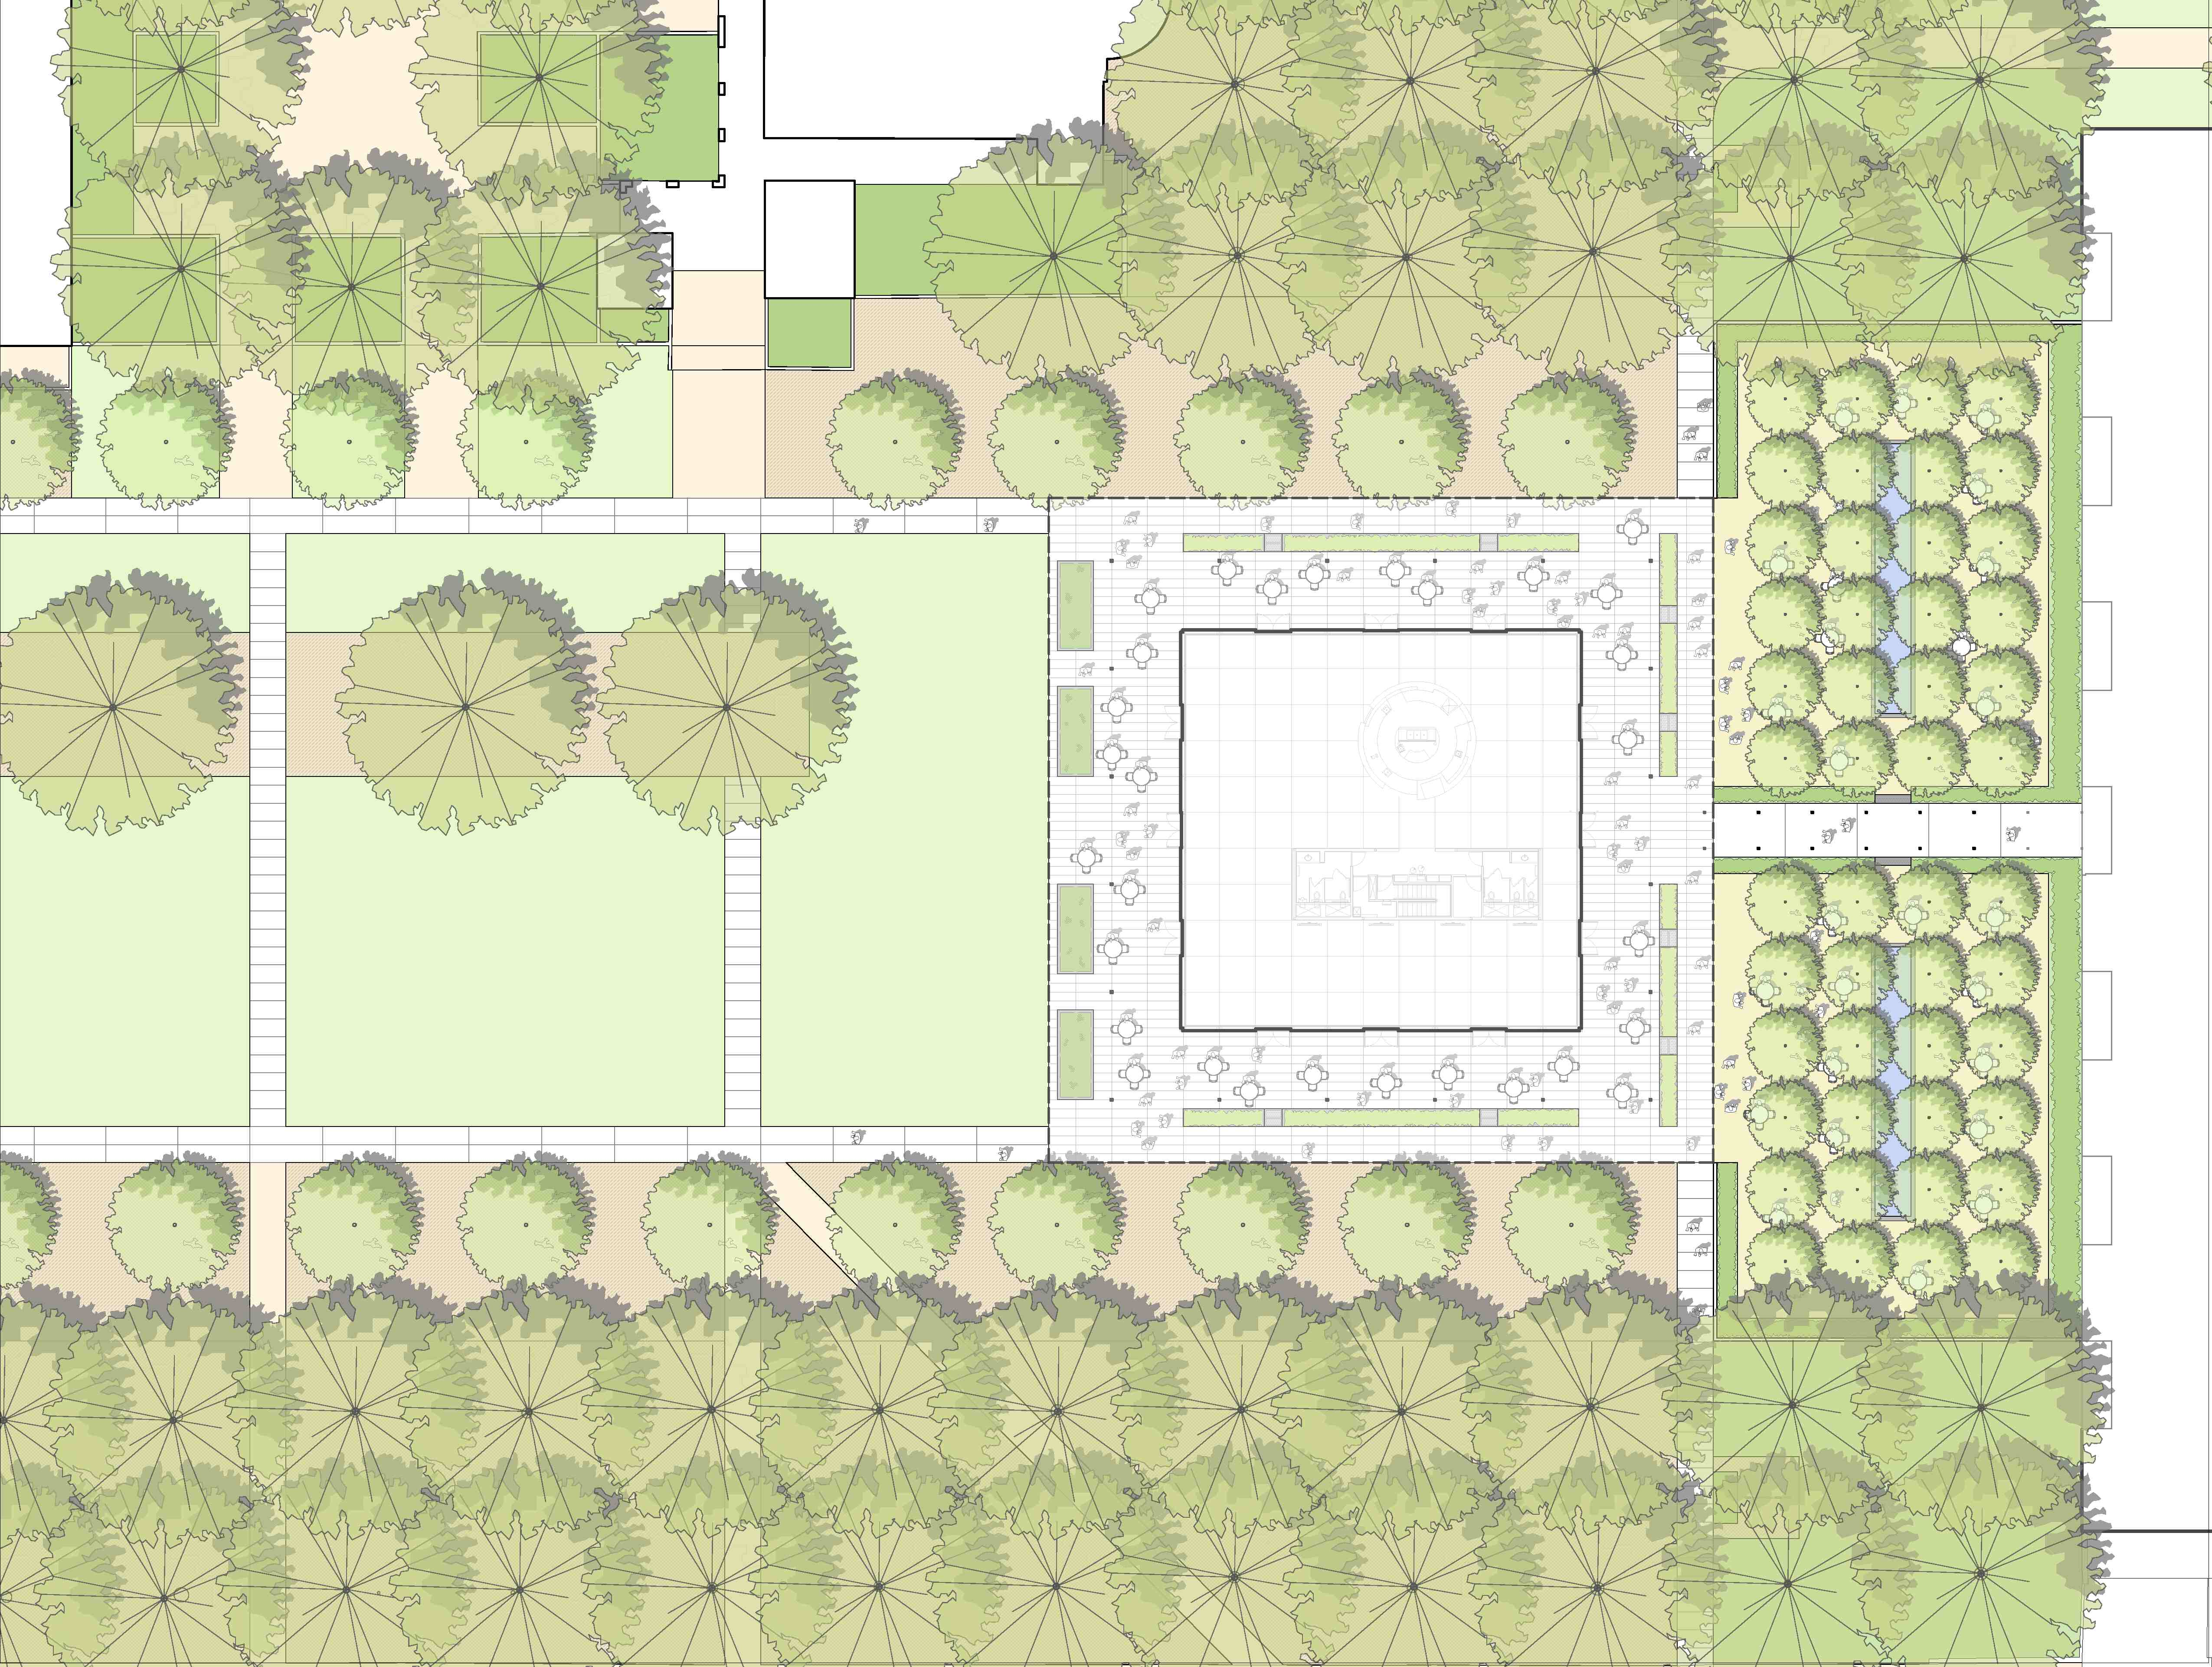 Elevation Plan Scale : Asla professional awards the brochstein pavilion at